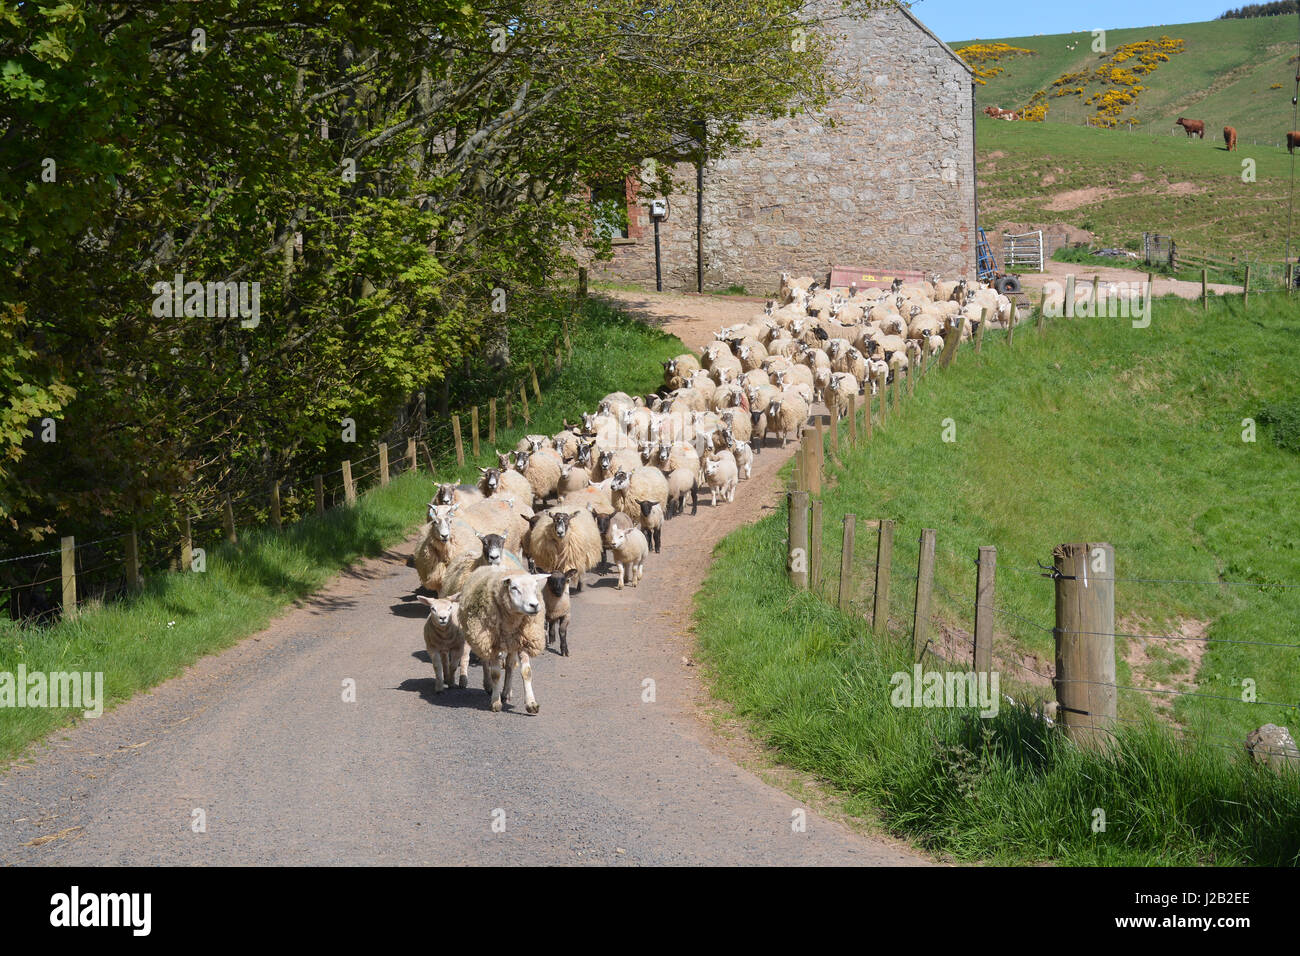 Hill sheep on road - Stock Image